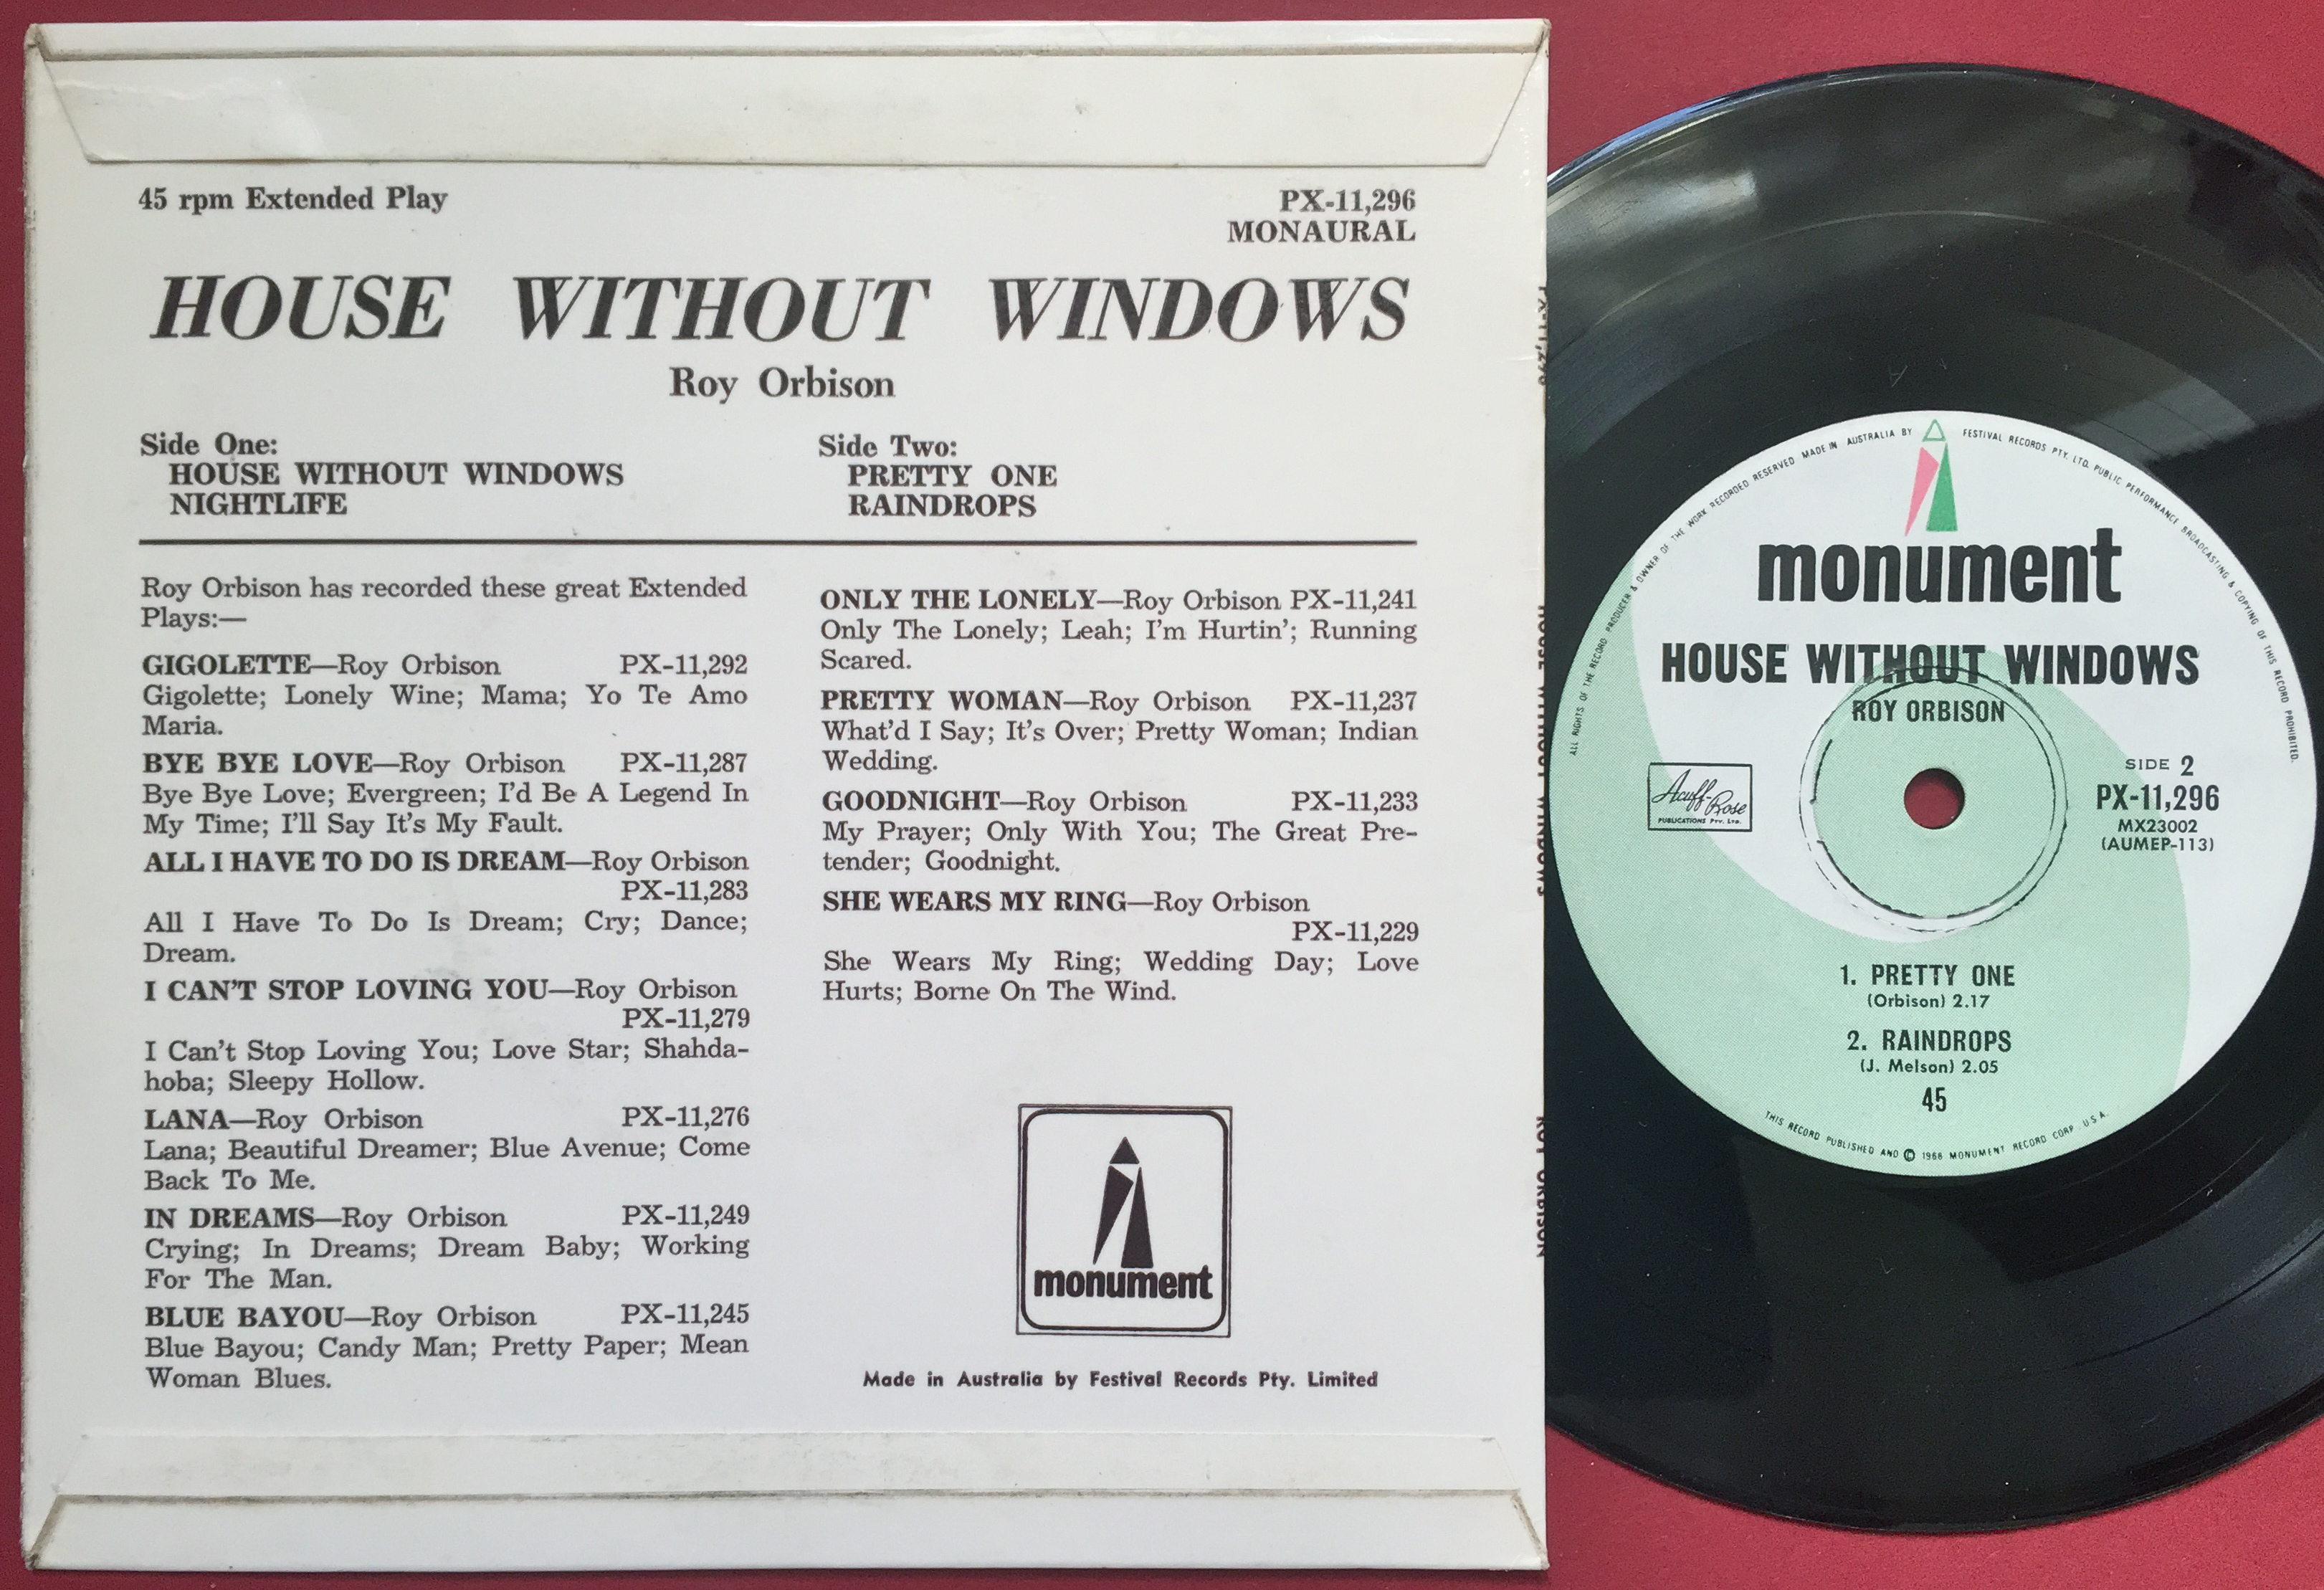 window rock latin singles The stereo singles project, part 1  the majors generally ignored rock and  hallelujah, i love him so/i'm lookin' out the window s4192 - ronnie and roy .